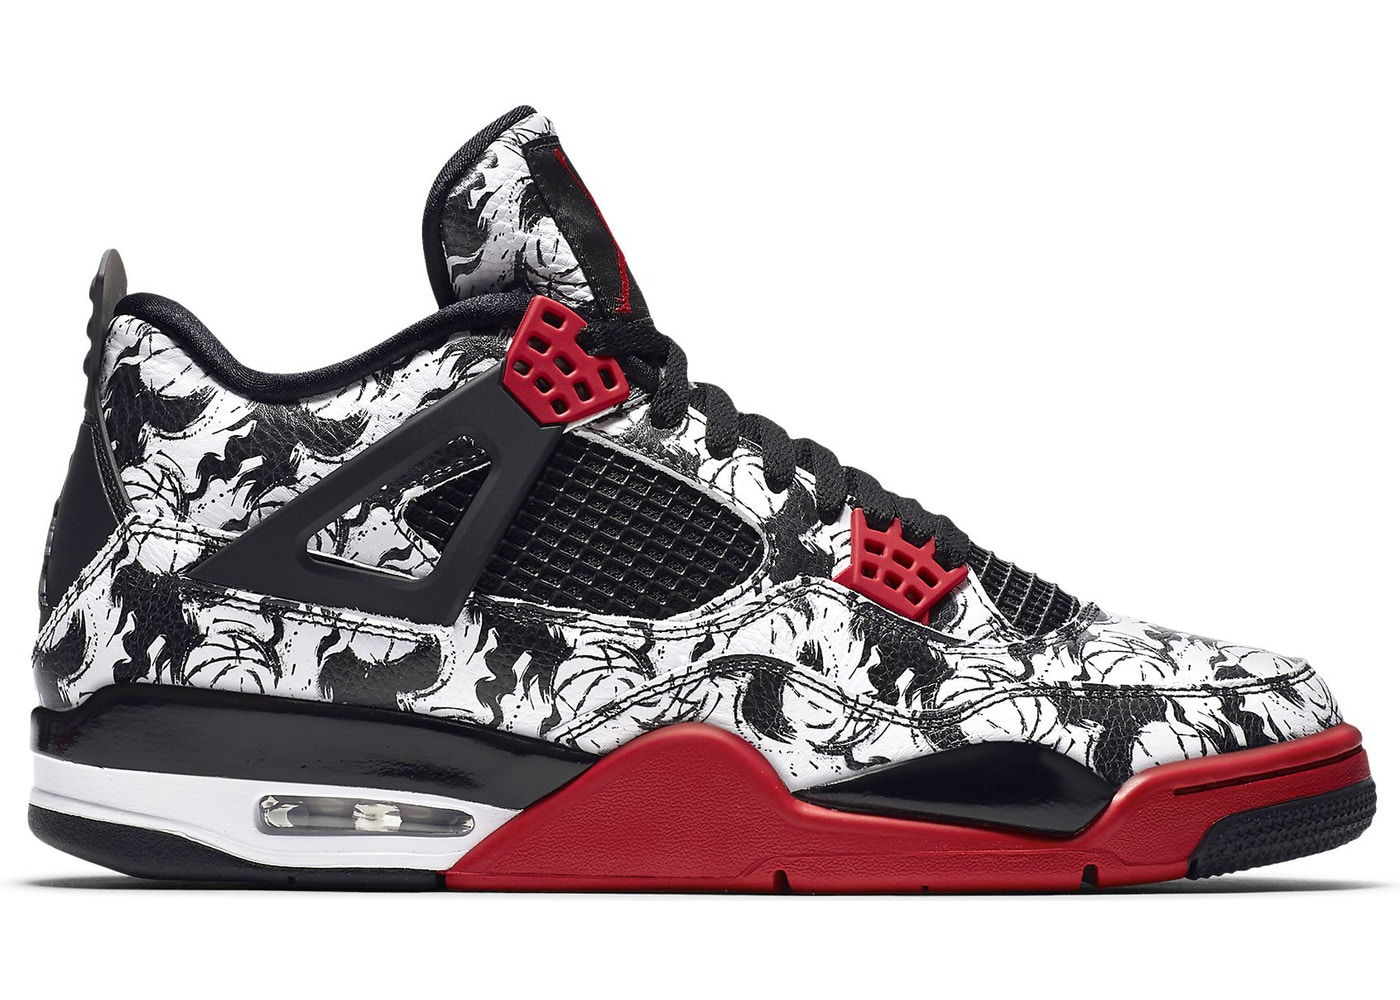 buy online 83ced dbf2b Jordan 4 Retro Tattoo (2018) - BQ0897-006